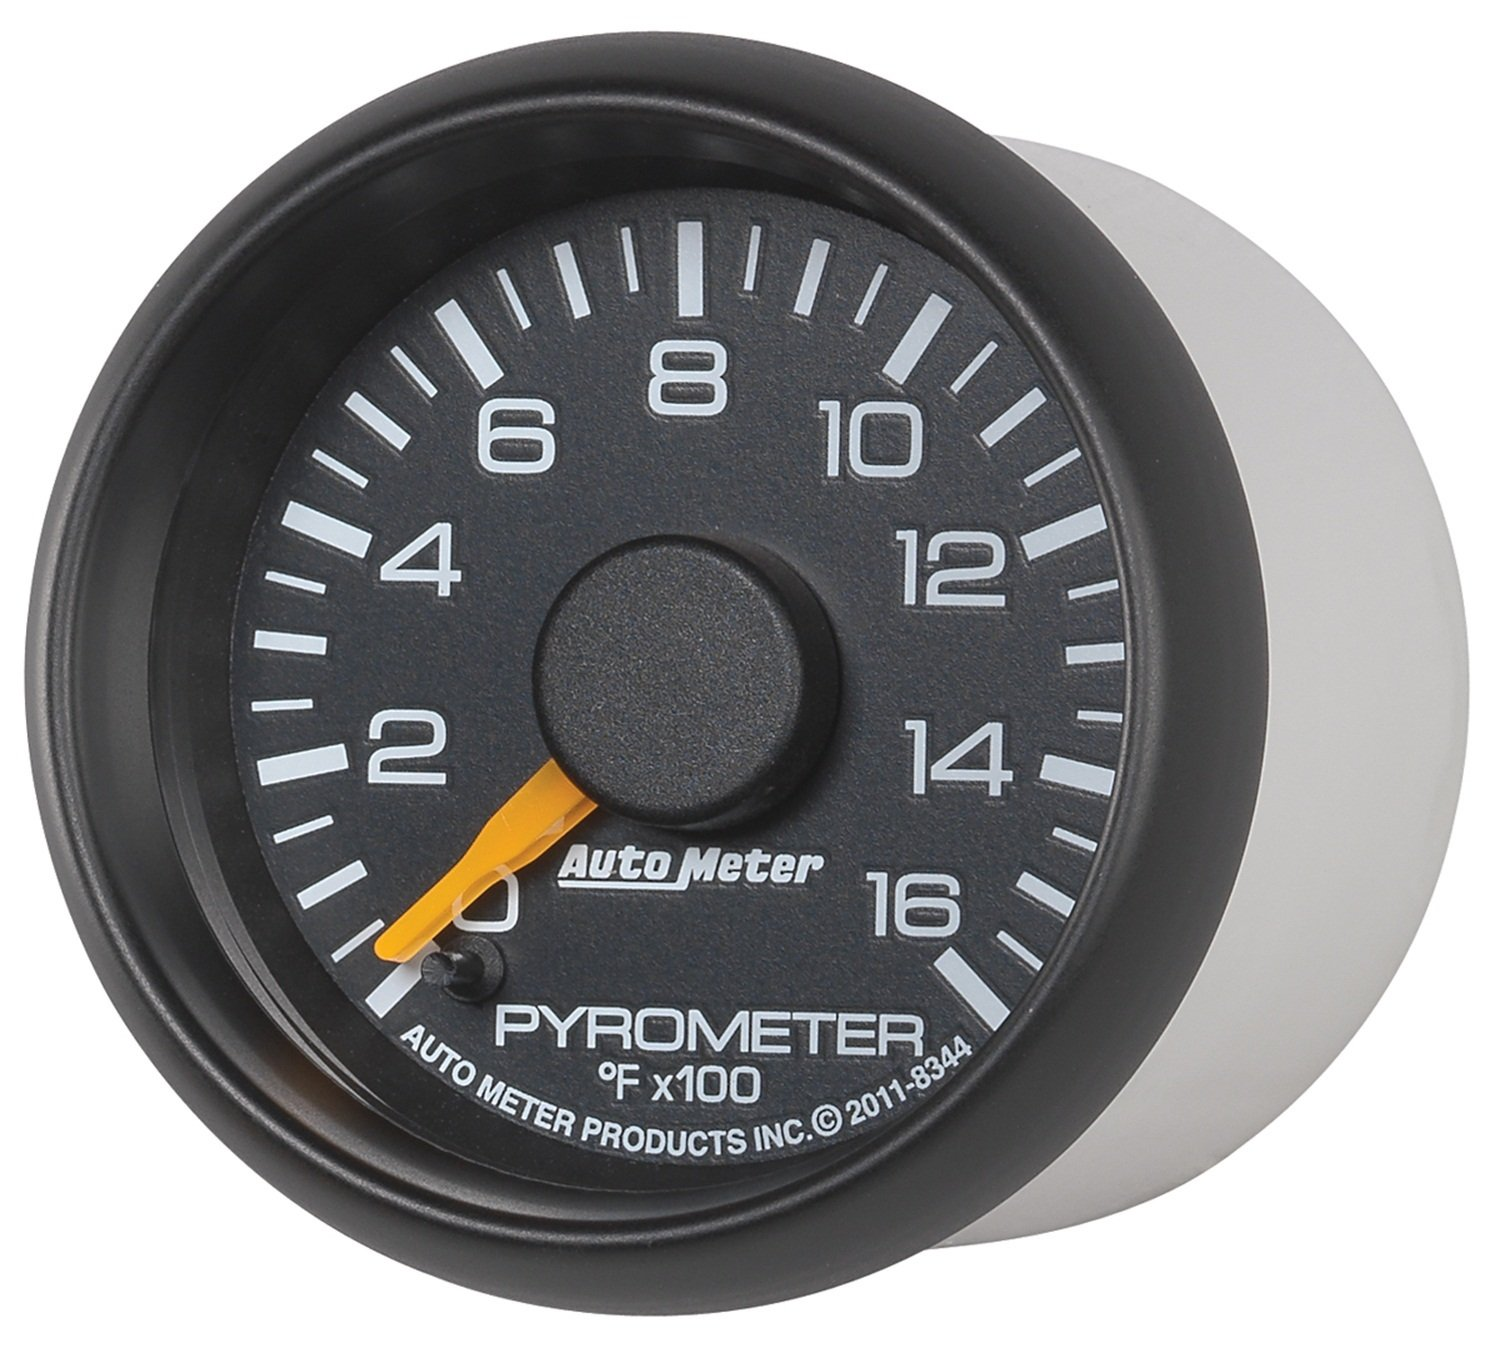 Auto Meter 8344 Chevy Factory Match Electric Pyrometer Gauge Kit by Auto Meter (Image #4)